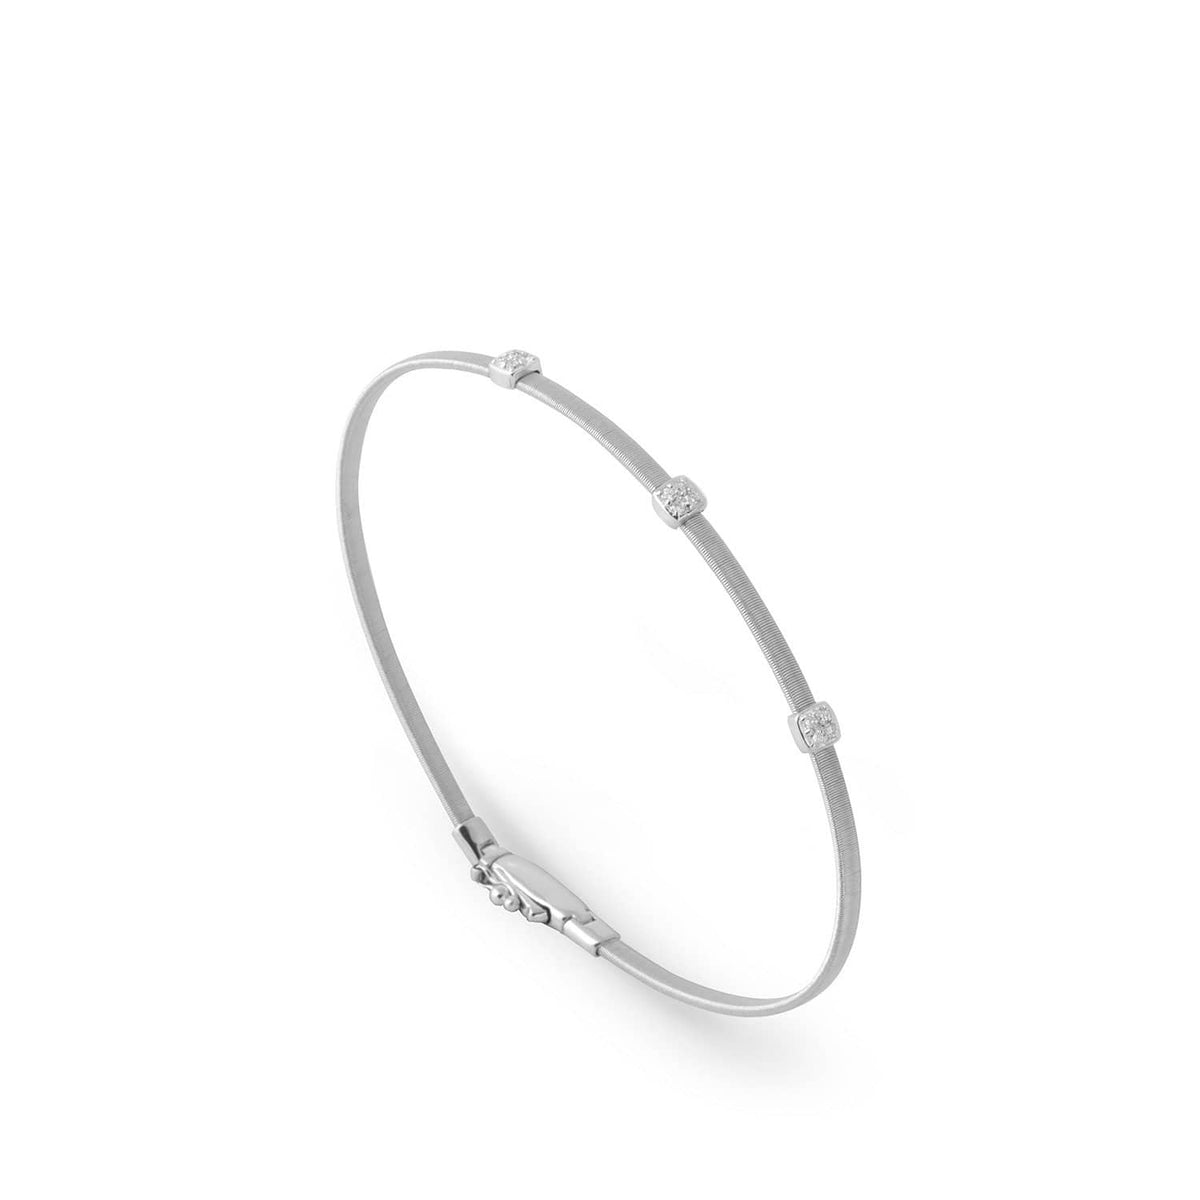 Masai Small Three Station Diamond Bracelet in White Gold